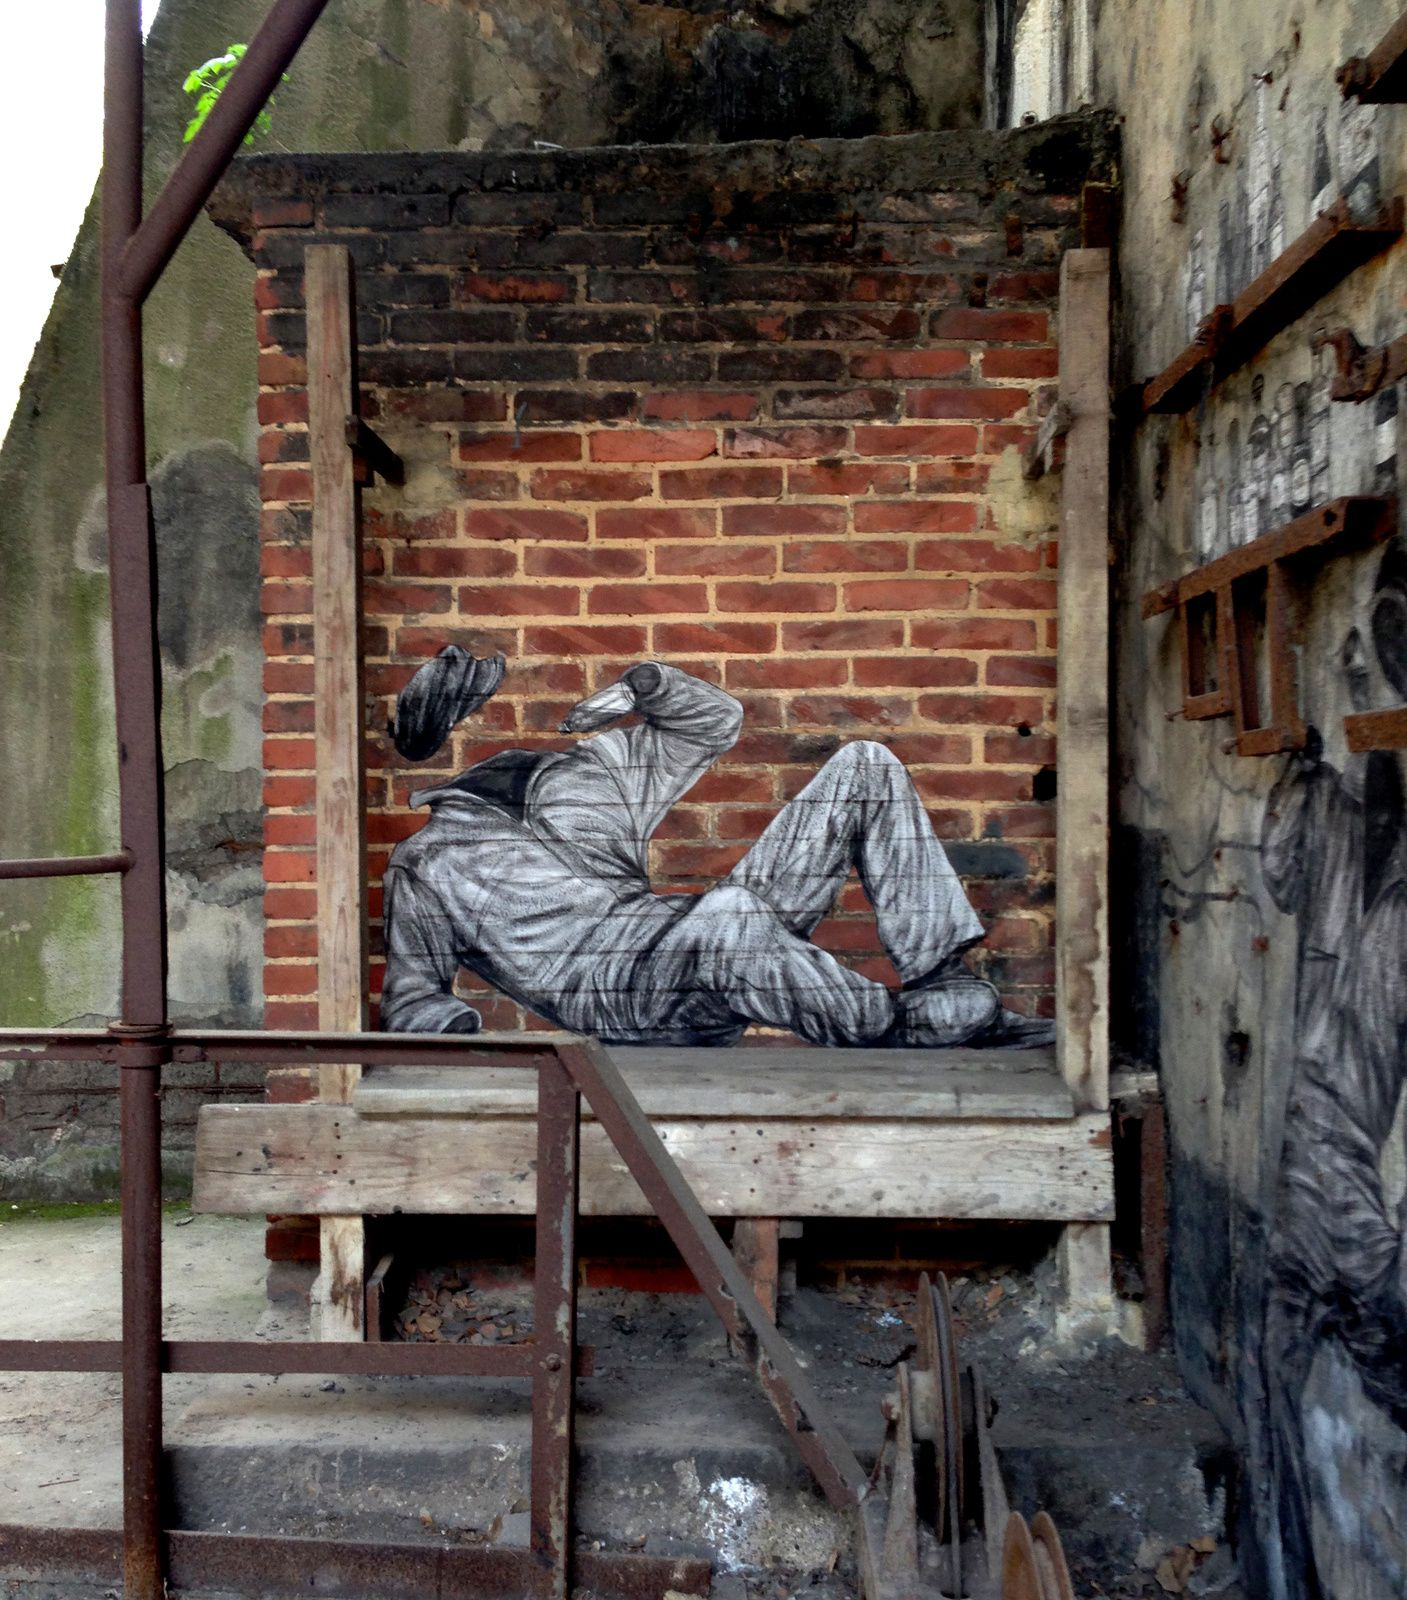 Urban art Biennale